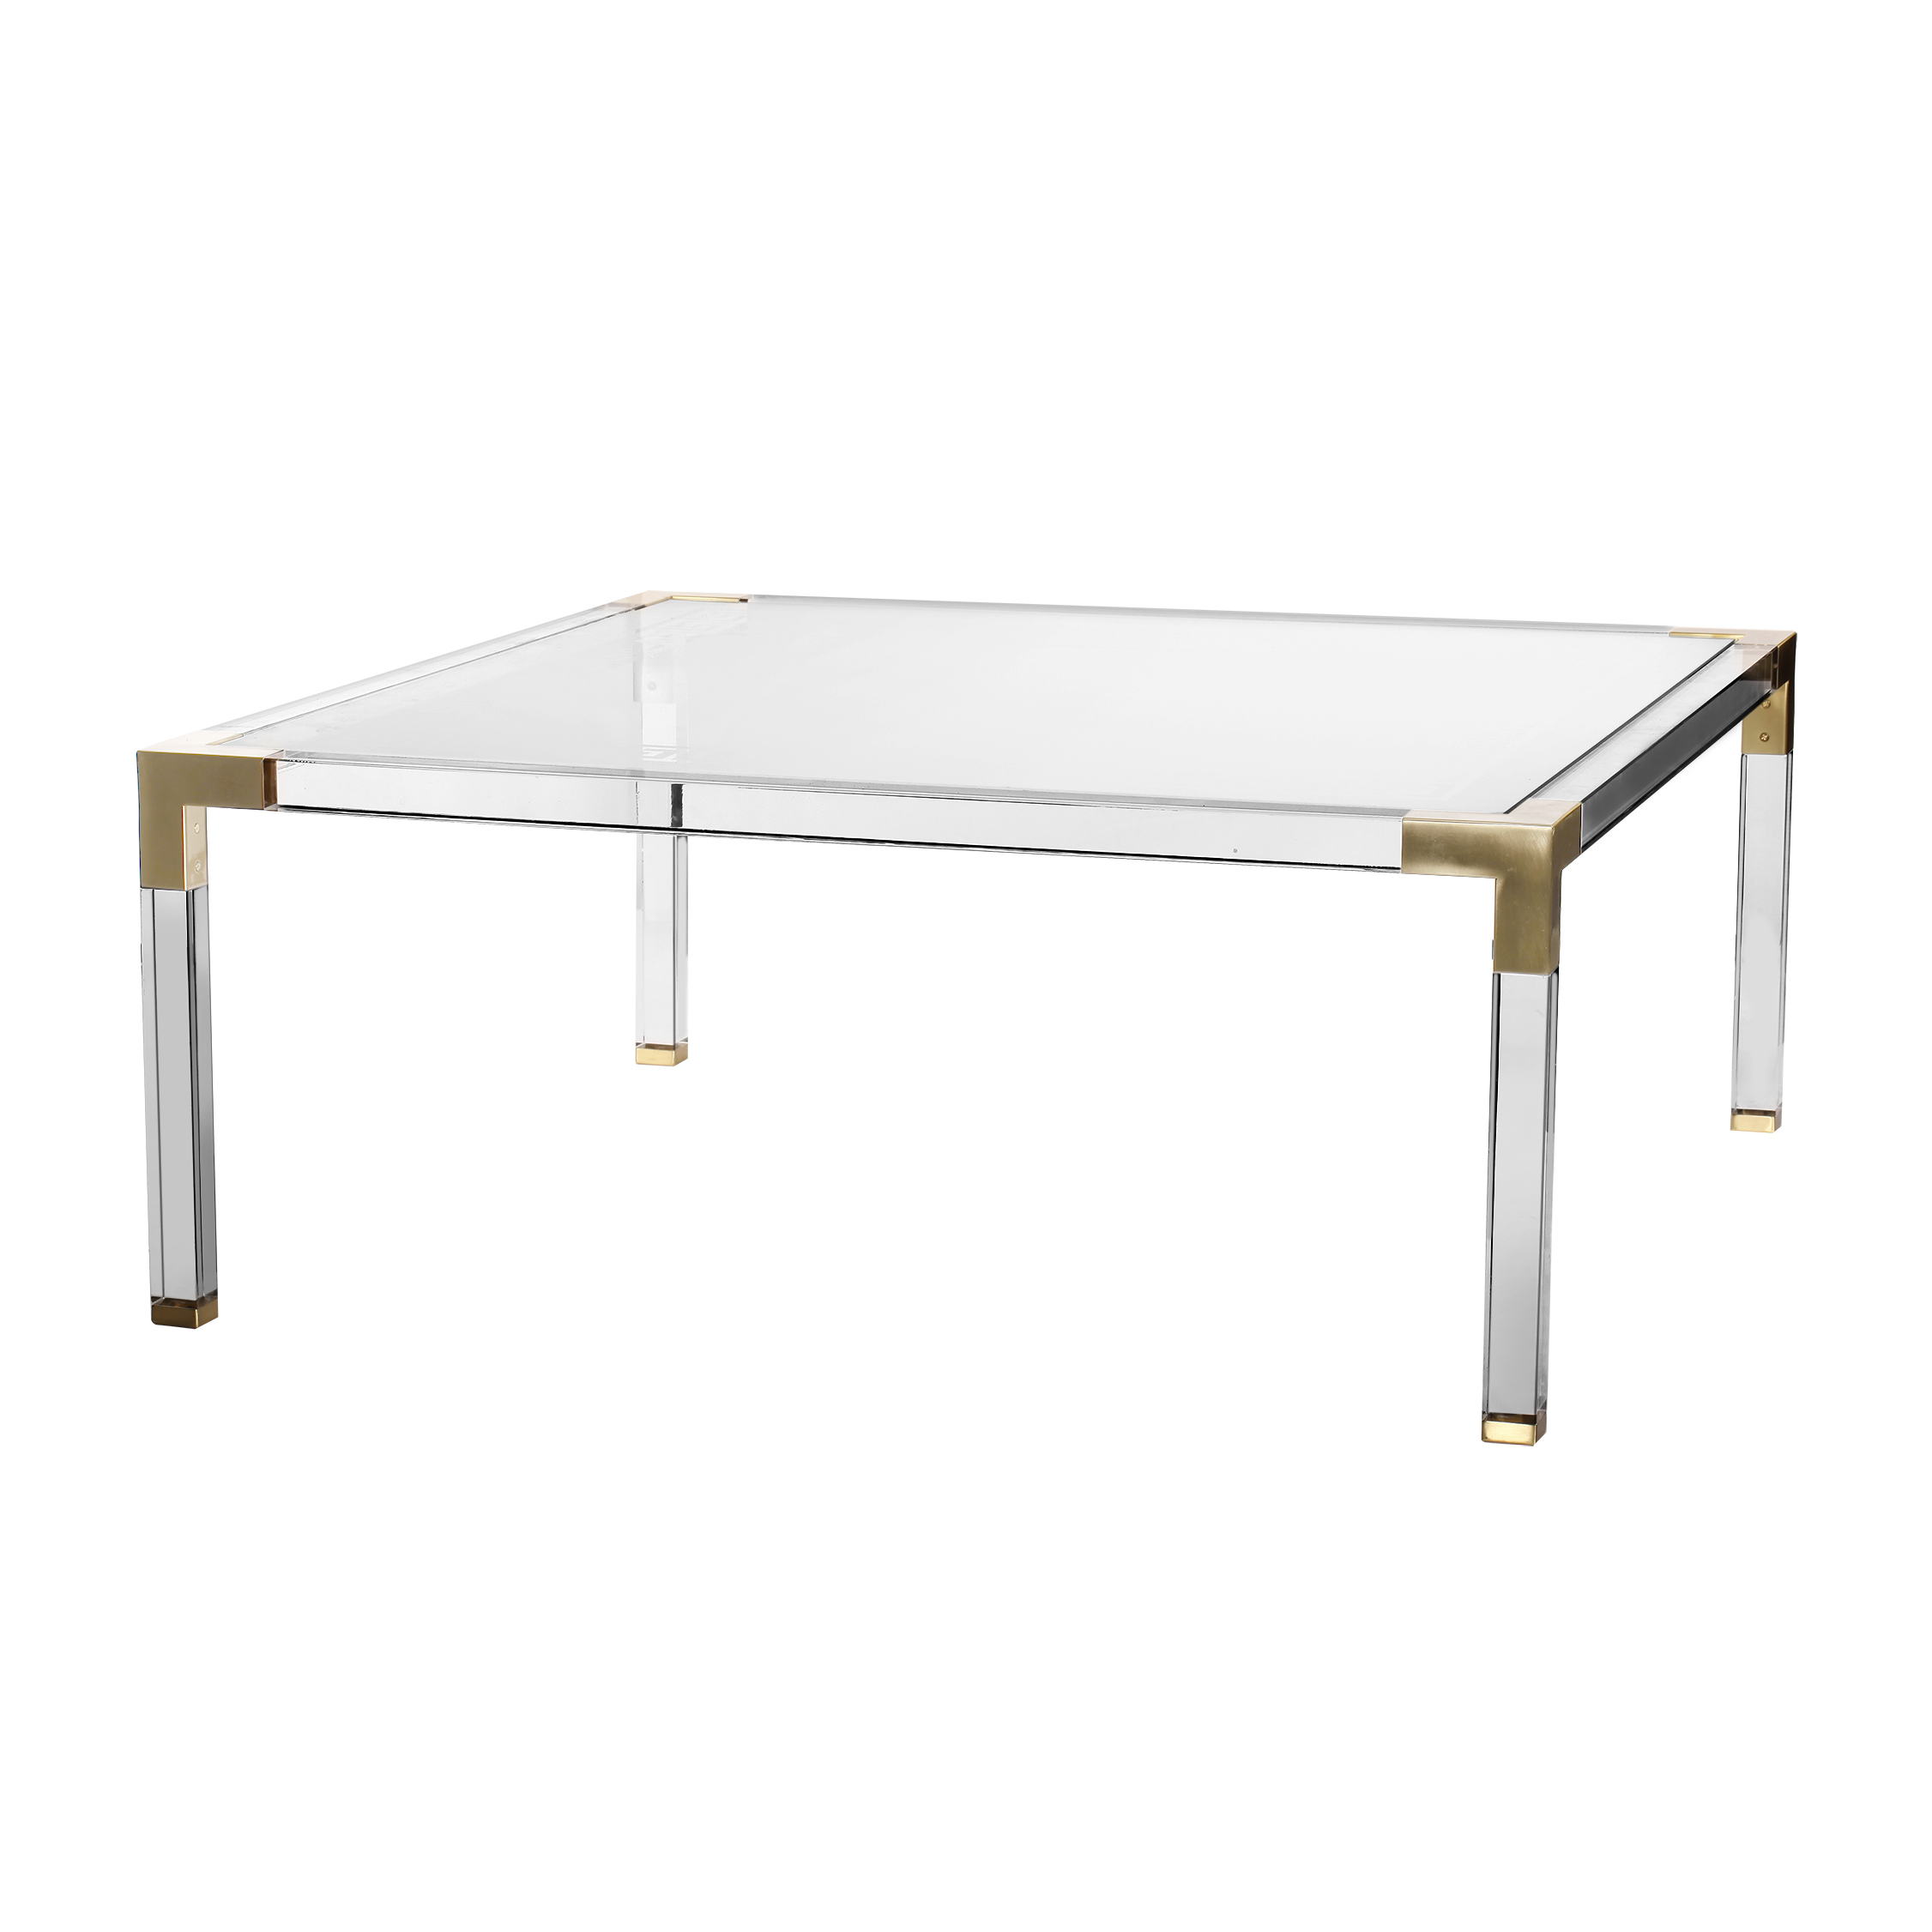 400x16 5 Glass Acrylic Coffee Table Coffee Table Acrylic